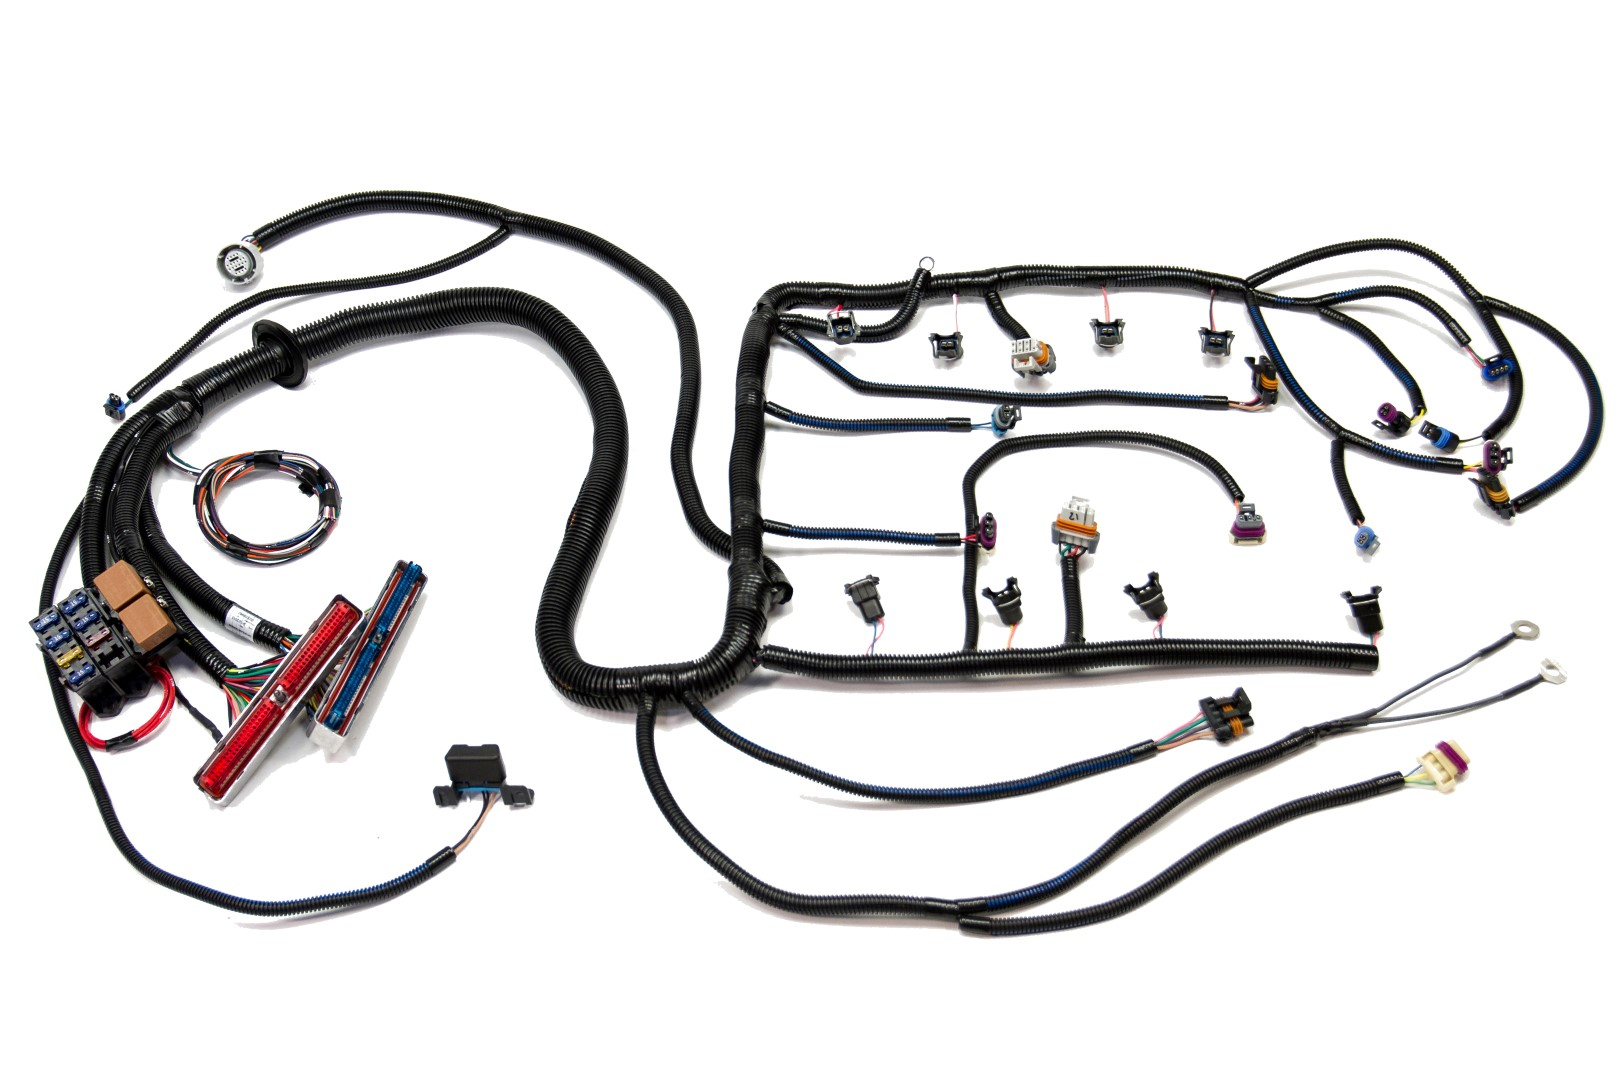 HAR 1012 psi standalone wiring harness ls wiring ls wiring harness performance systems integration wiring harness at mifinder.co